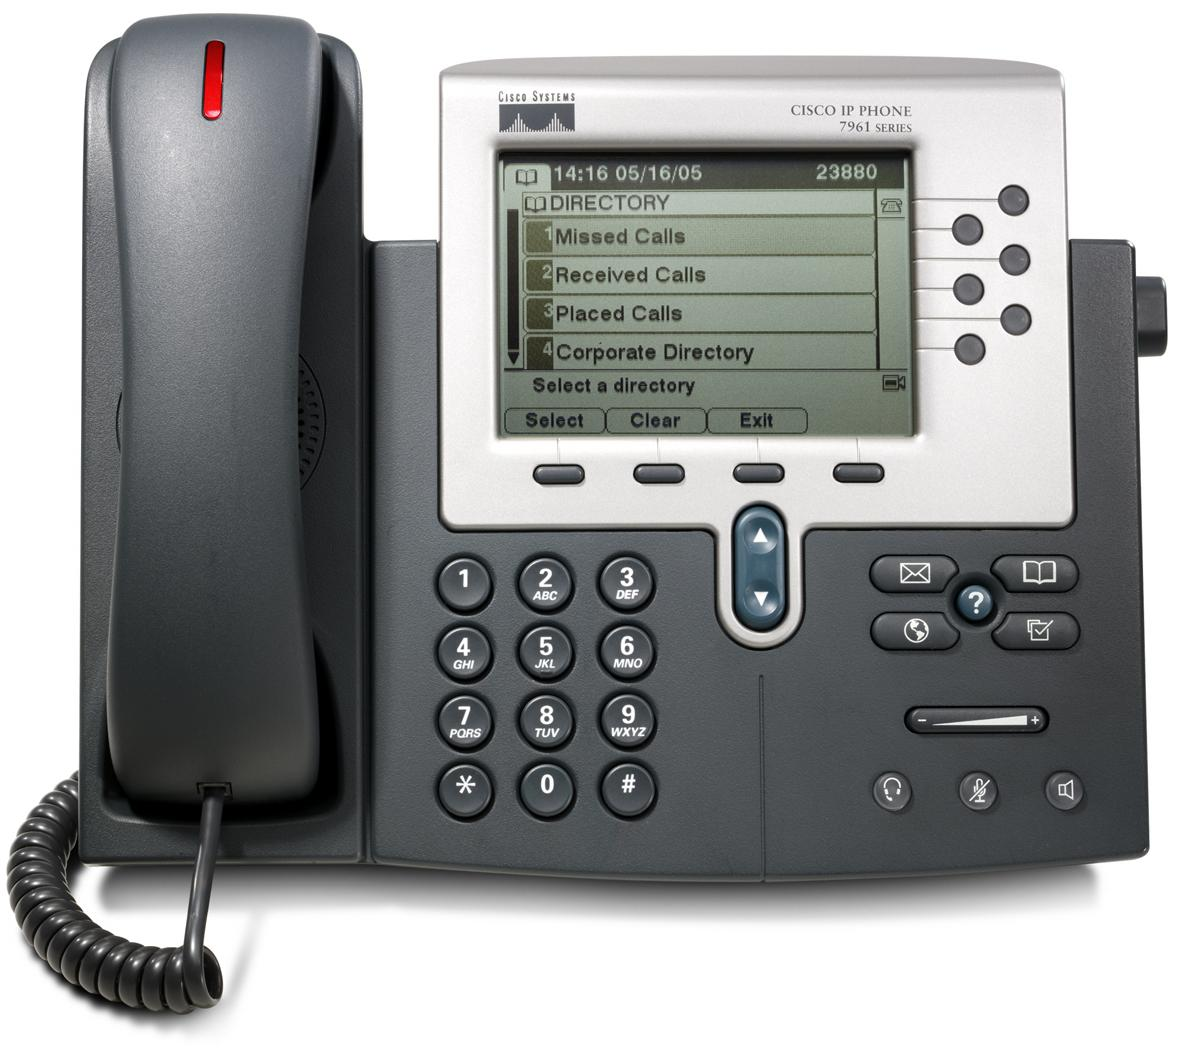 Best Voip Service >> TieTechnology Now Offers the Best VoIP Phone Systems with ...